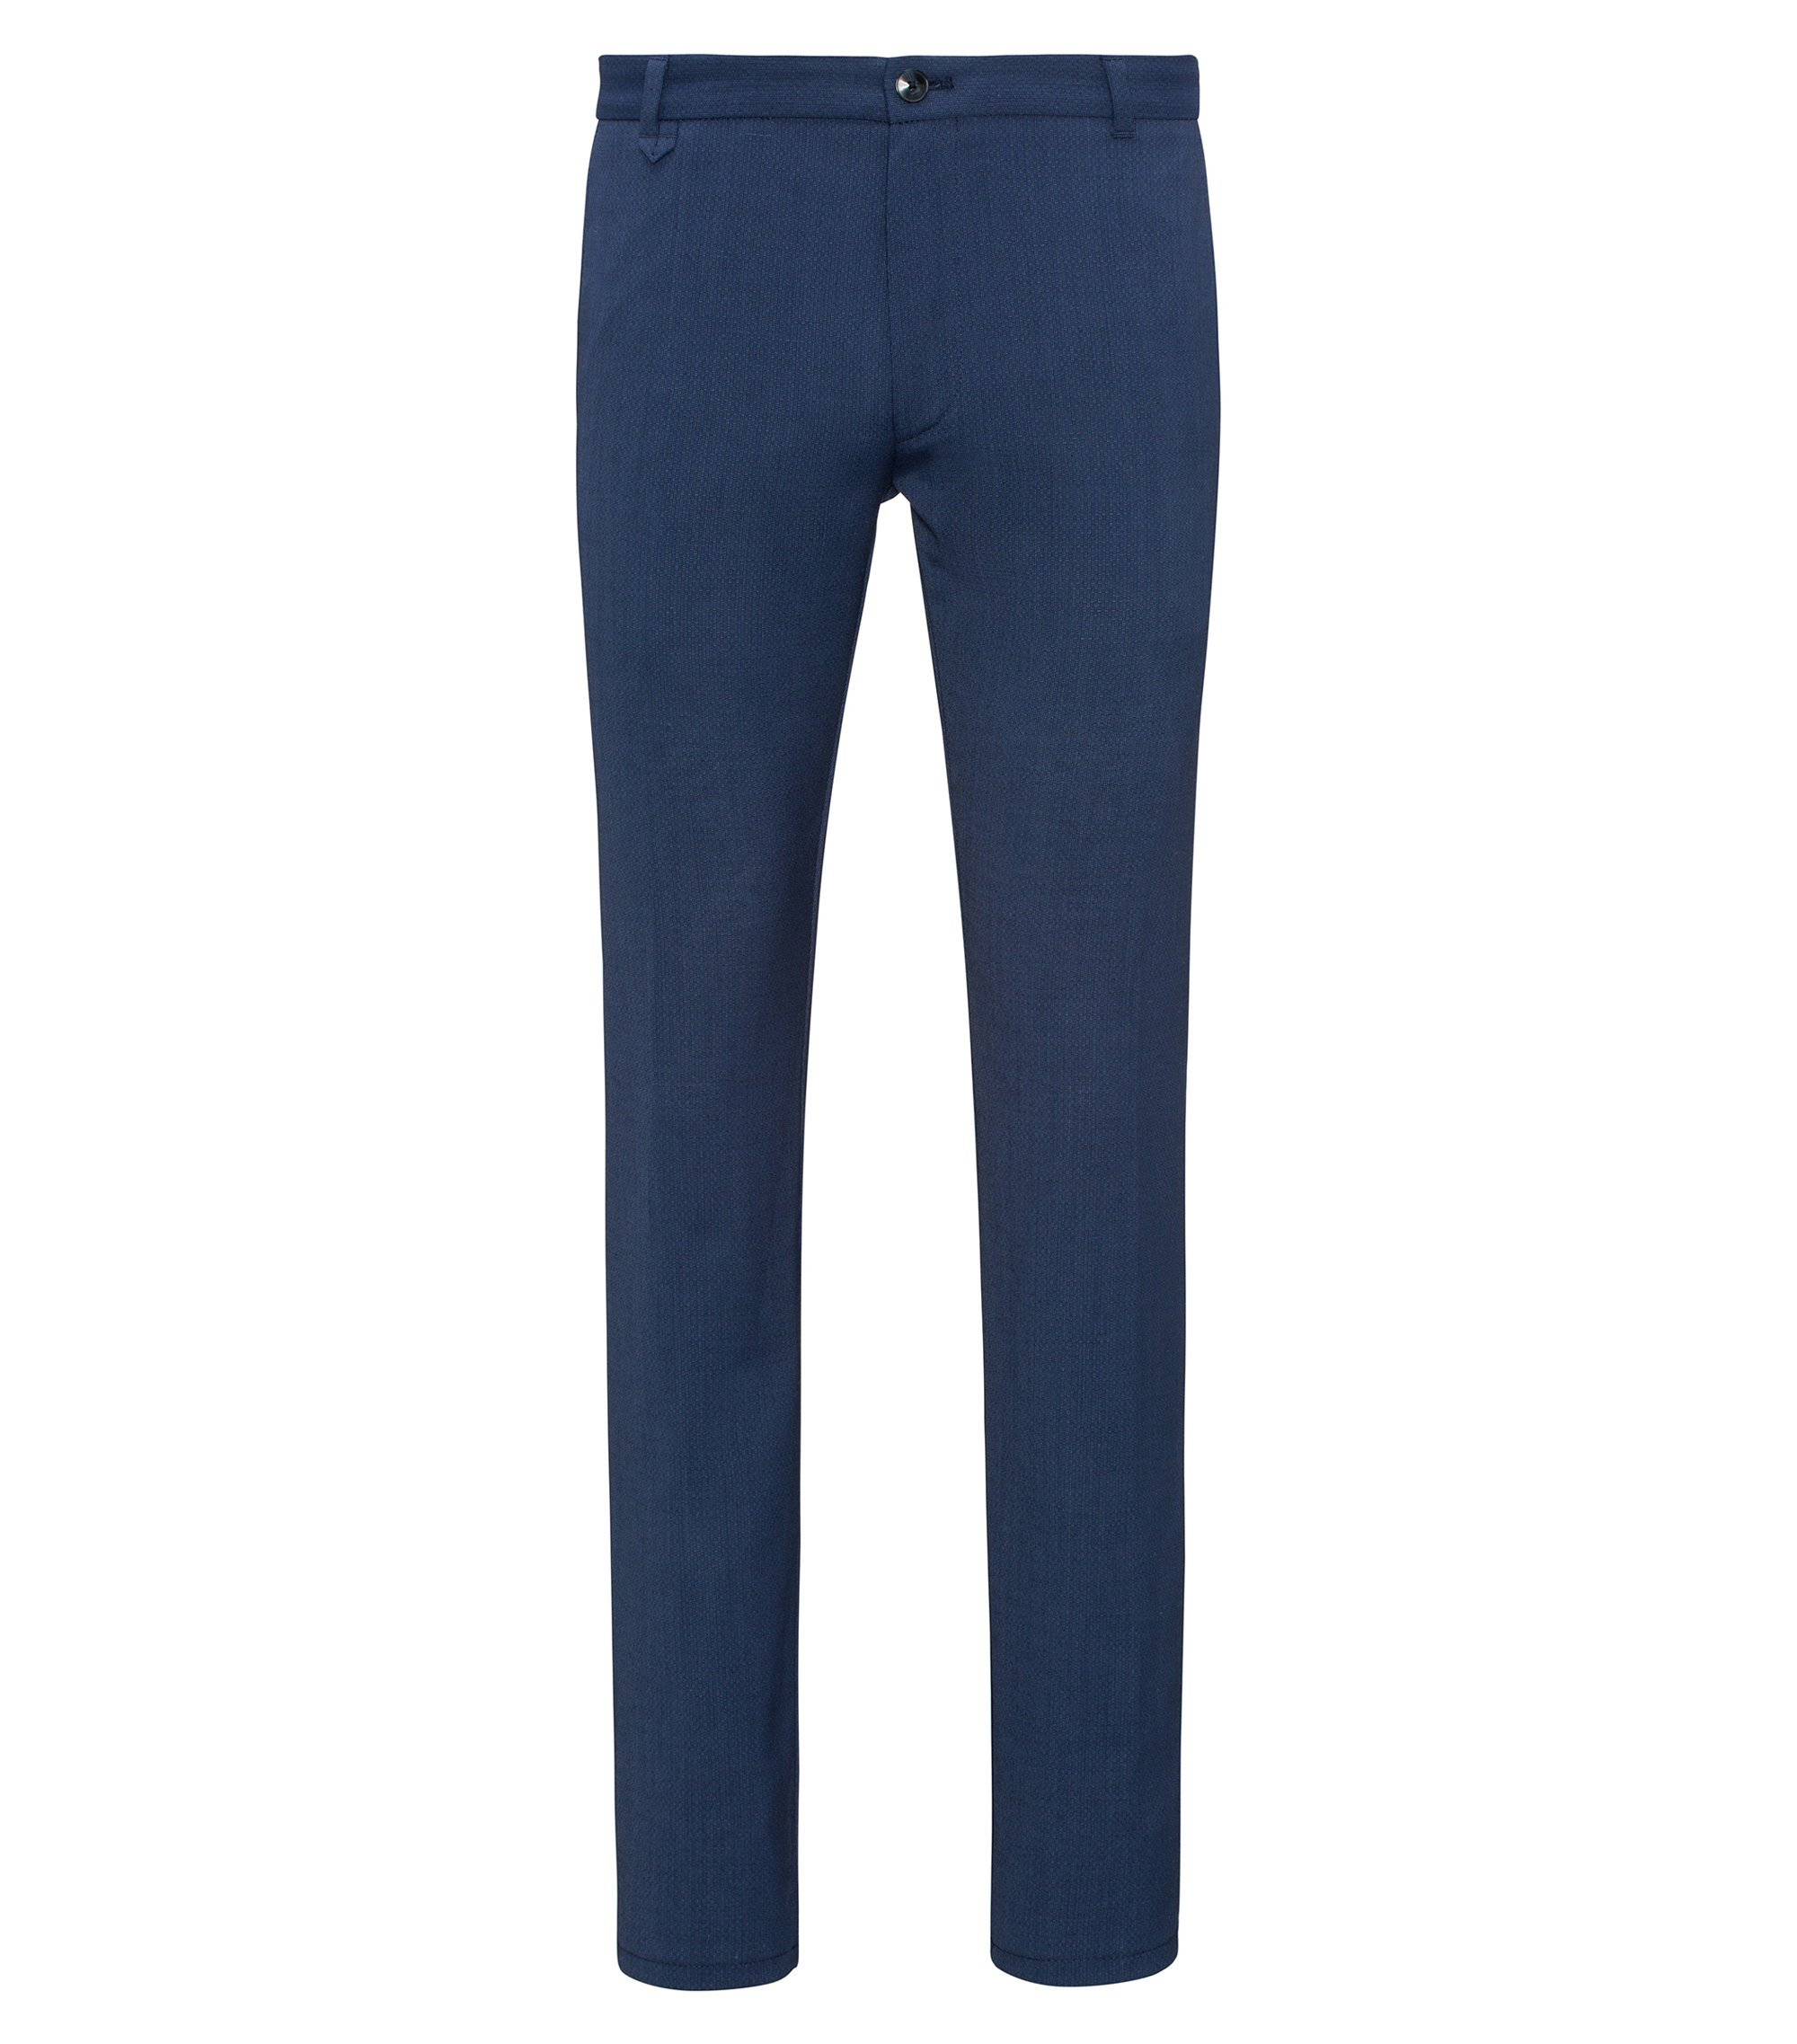 Wool Blend Pant, Extra Slim Fit | Heldor, Open Blue